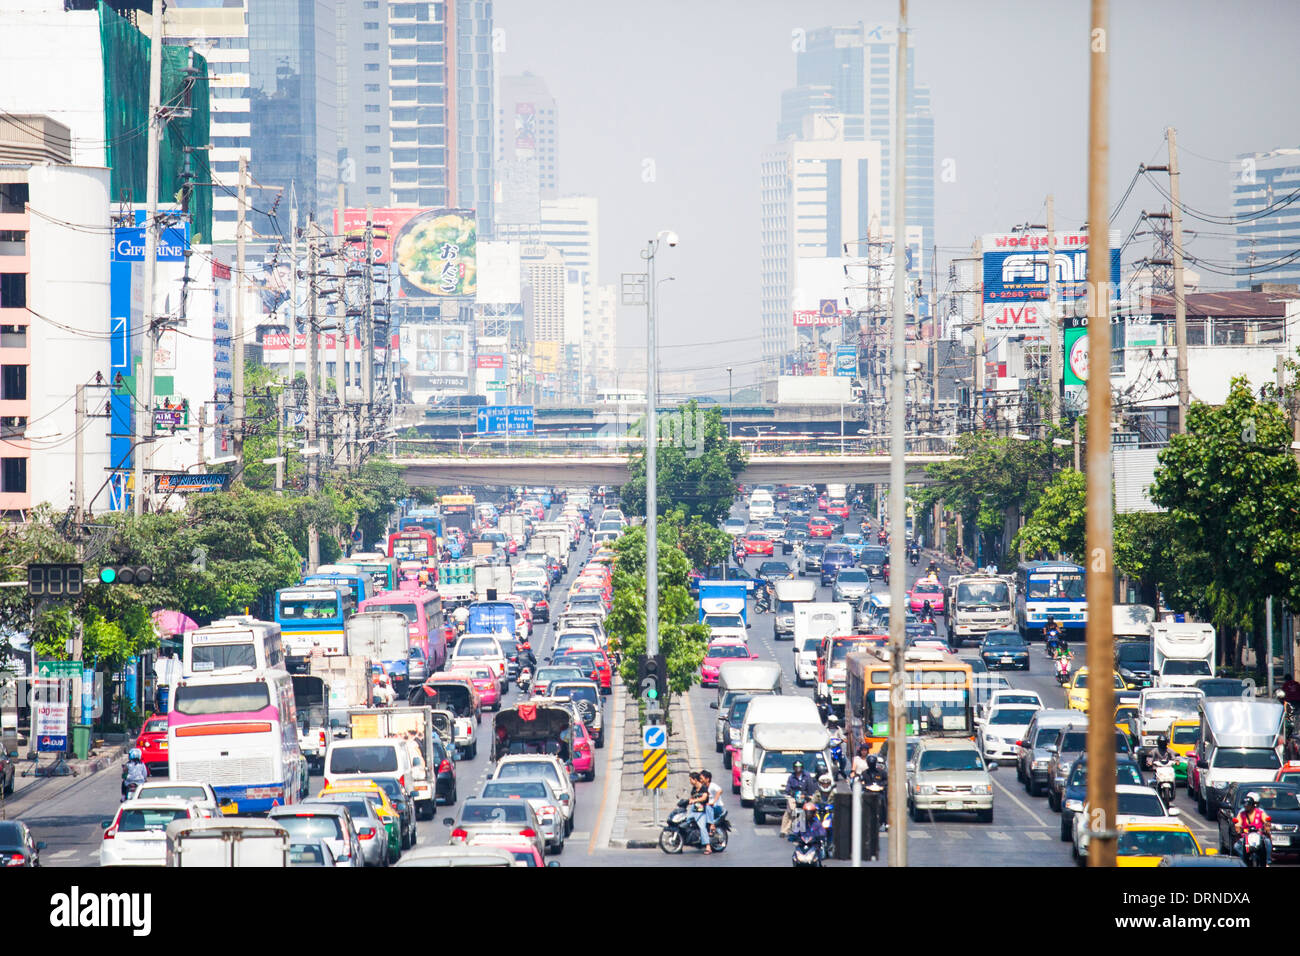 Traffic in Bangkok, Thailand - Stock Image